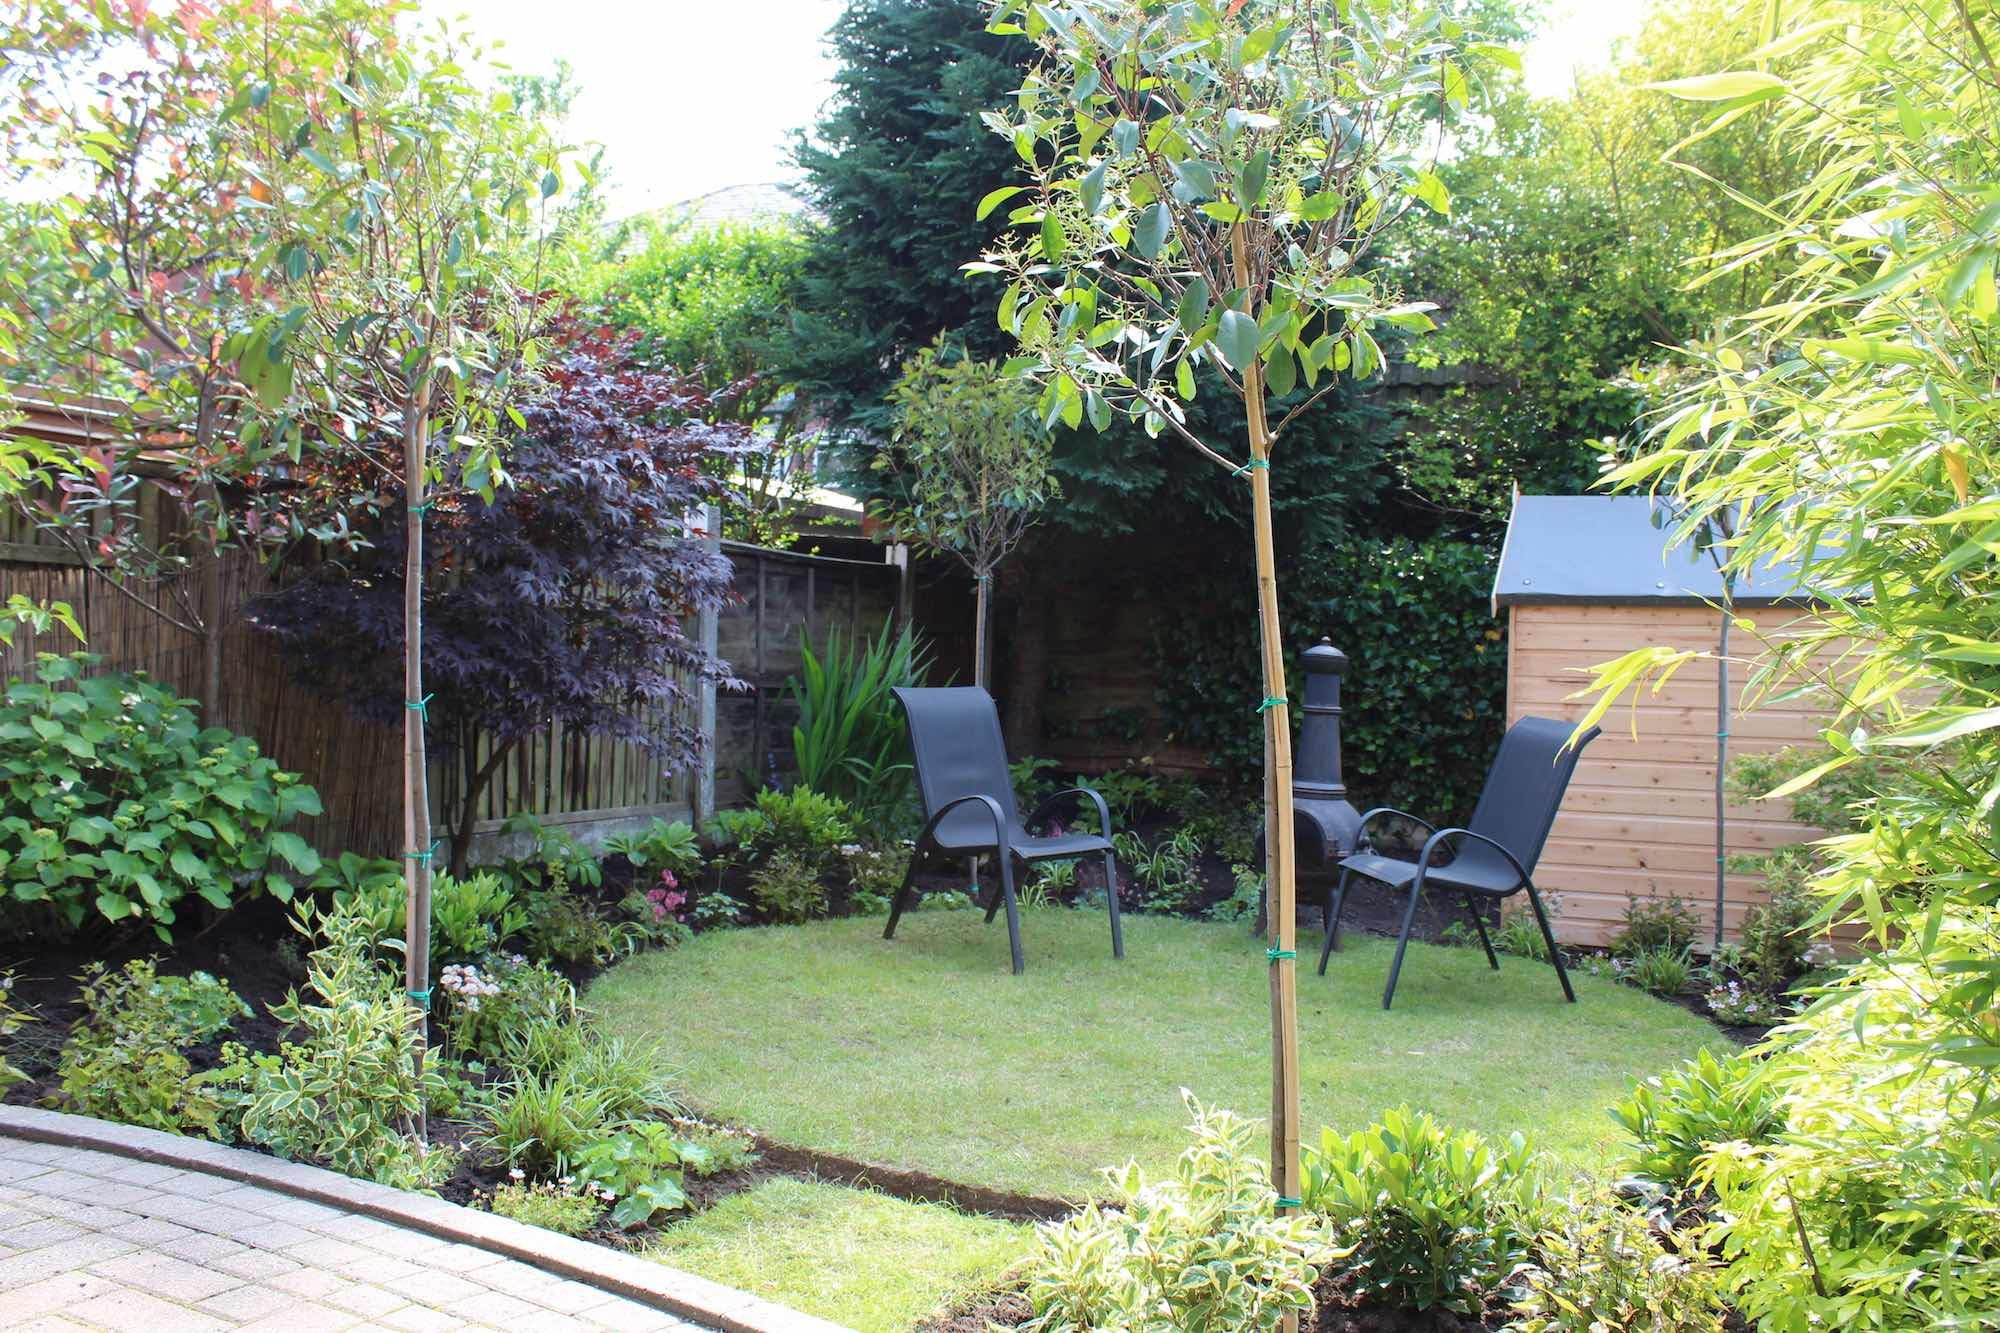 This small overlooked garden was transformed by Garden Ninja into